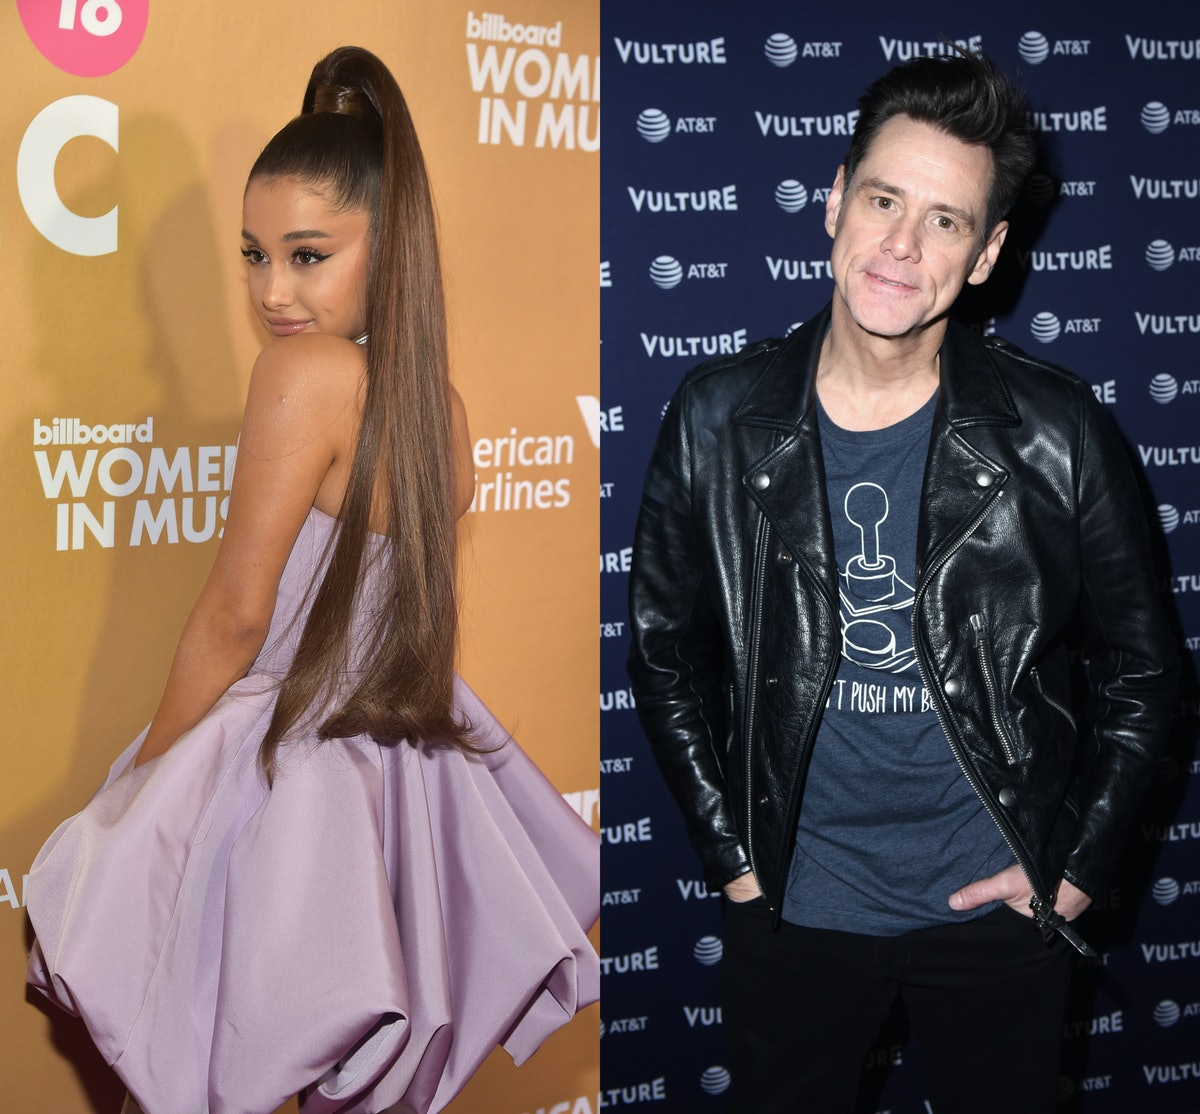 Ariana Grande & Jim Carrey's Twitter Exchange About Depression Is Such A Moving & Honest Dialogue